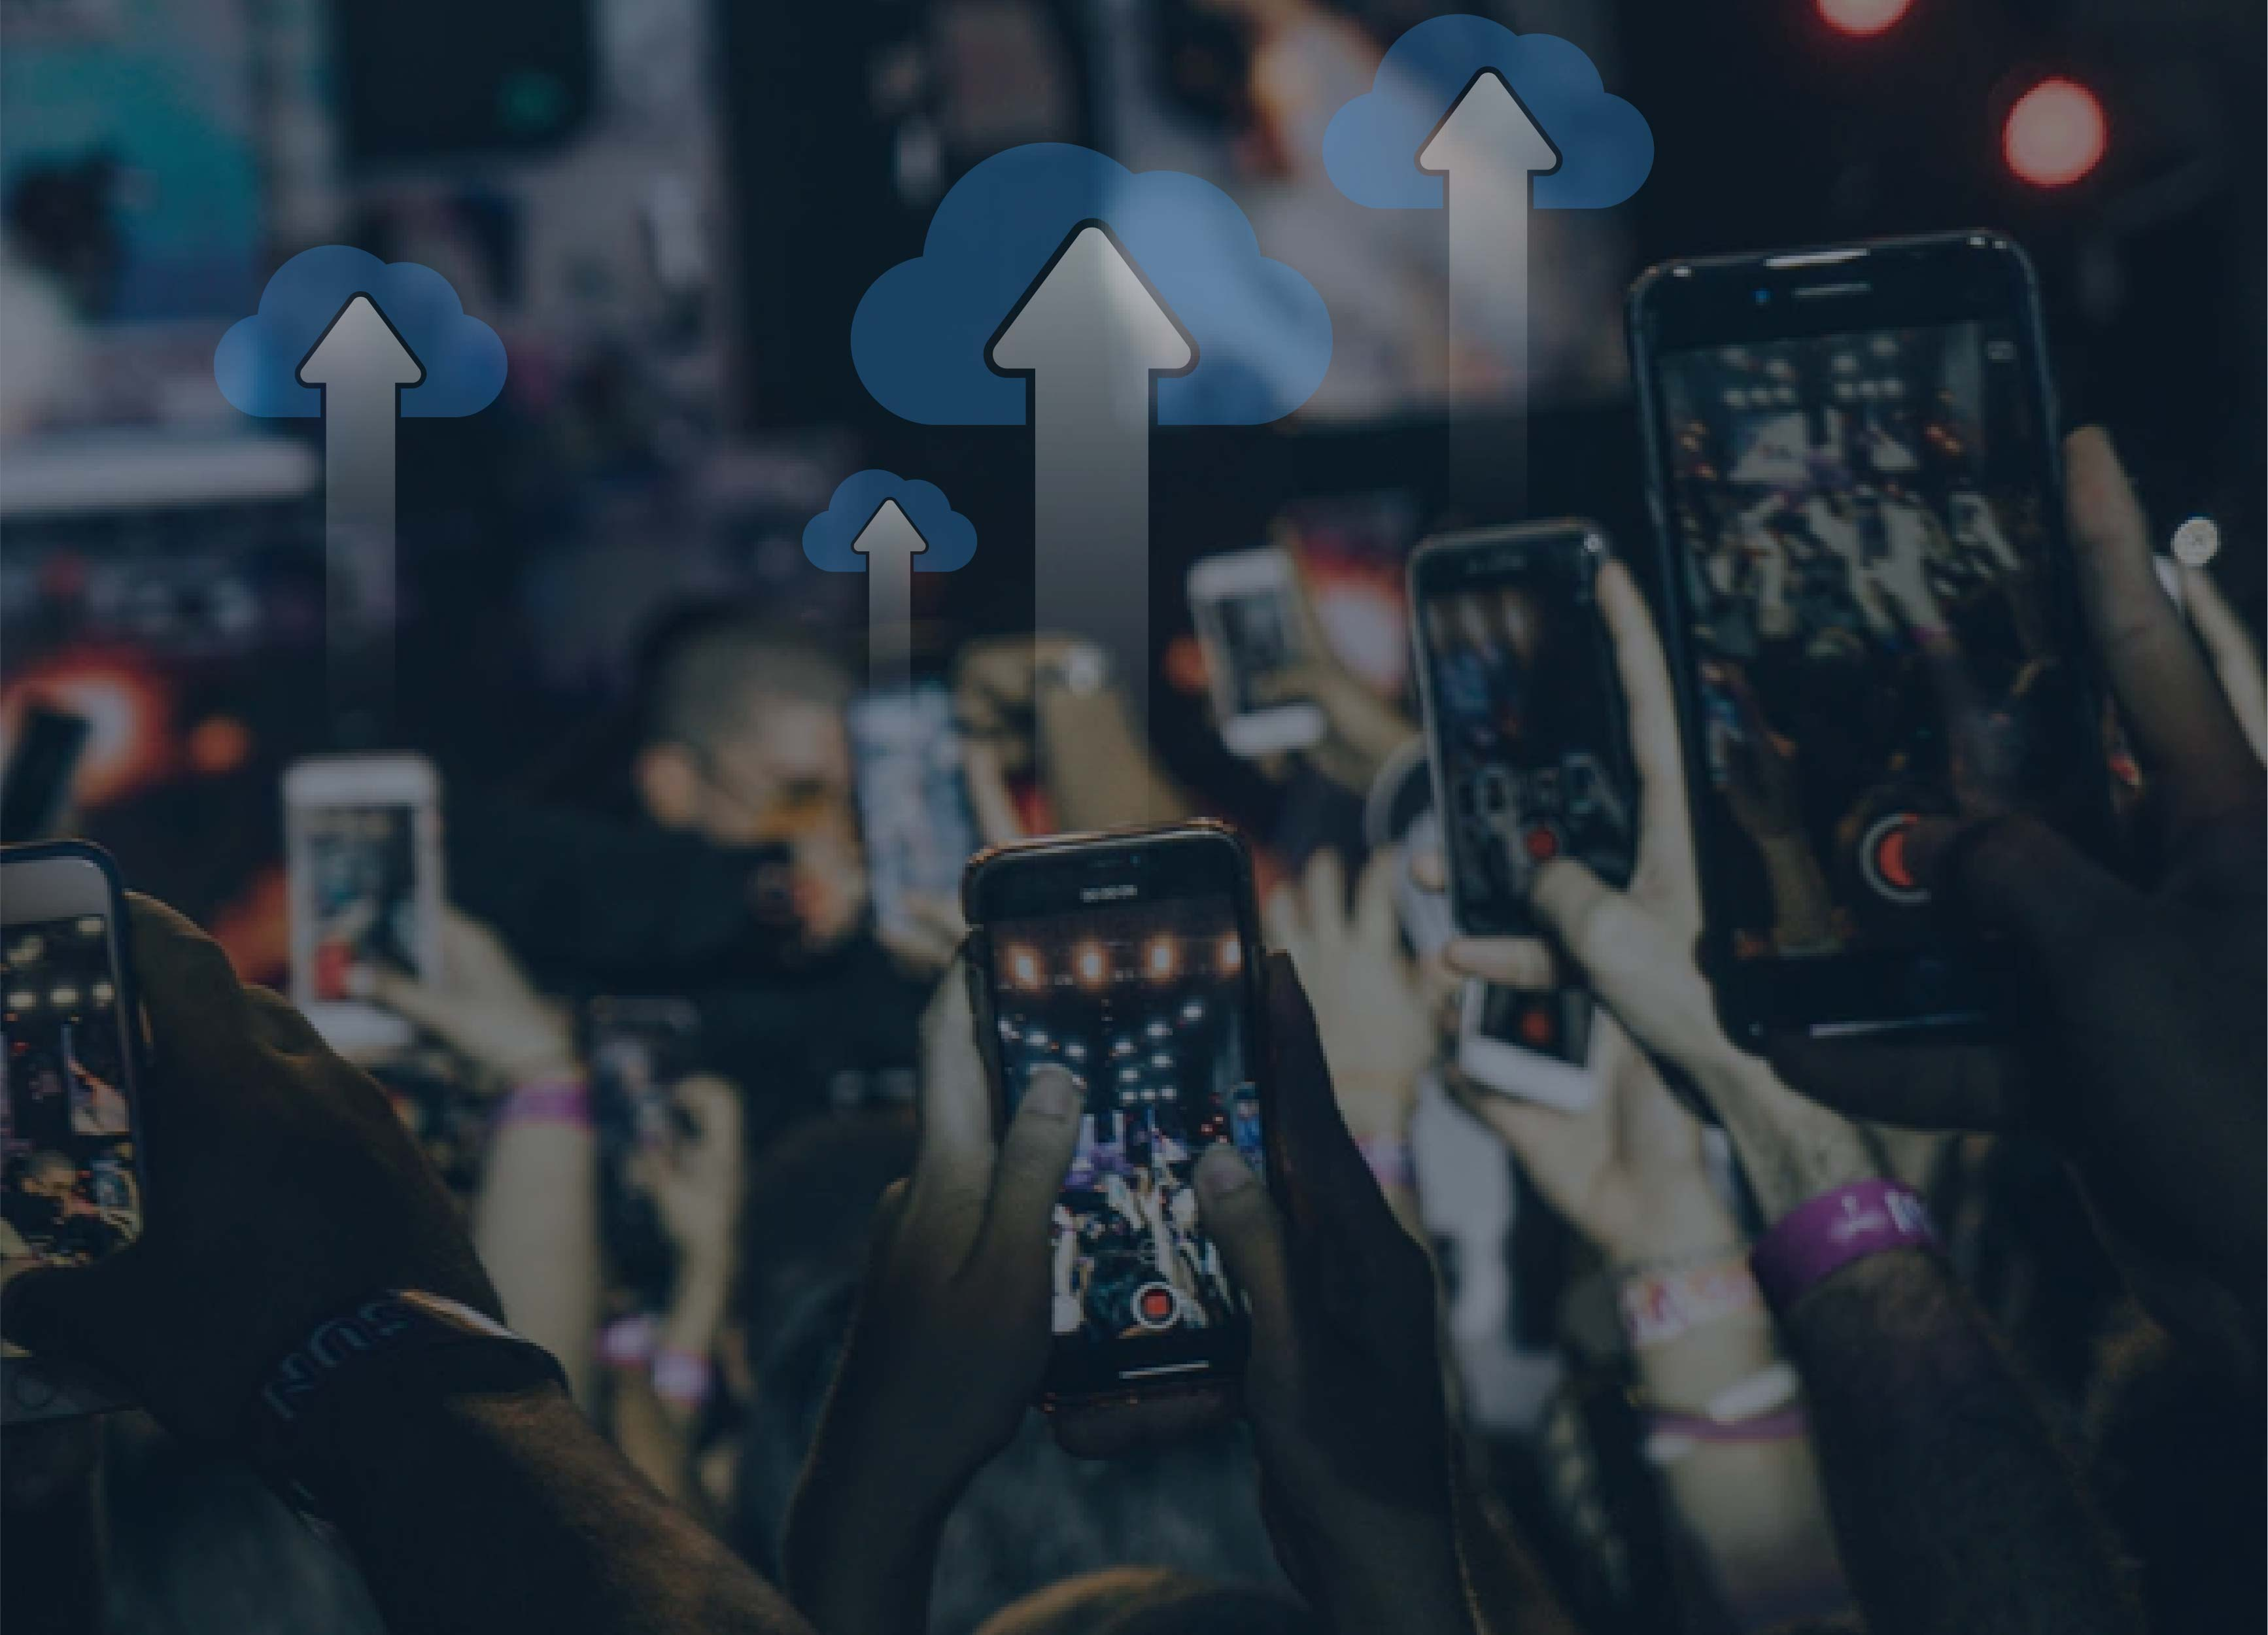 MVNO's need insight into network performance and experience for their customers and to find out if the host network is meeting SLAs. This is where crowdsourcing can help.